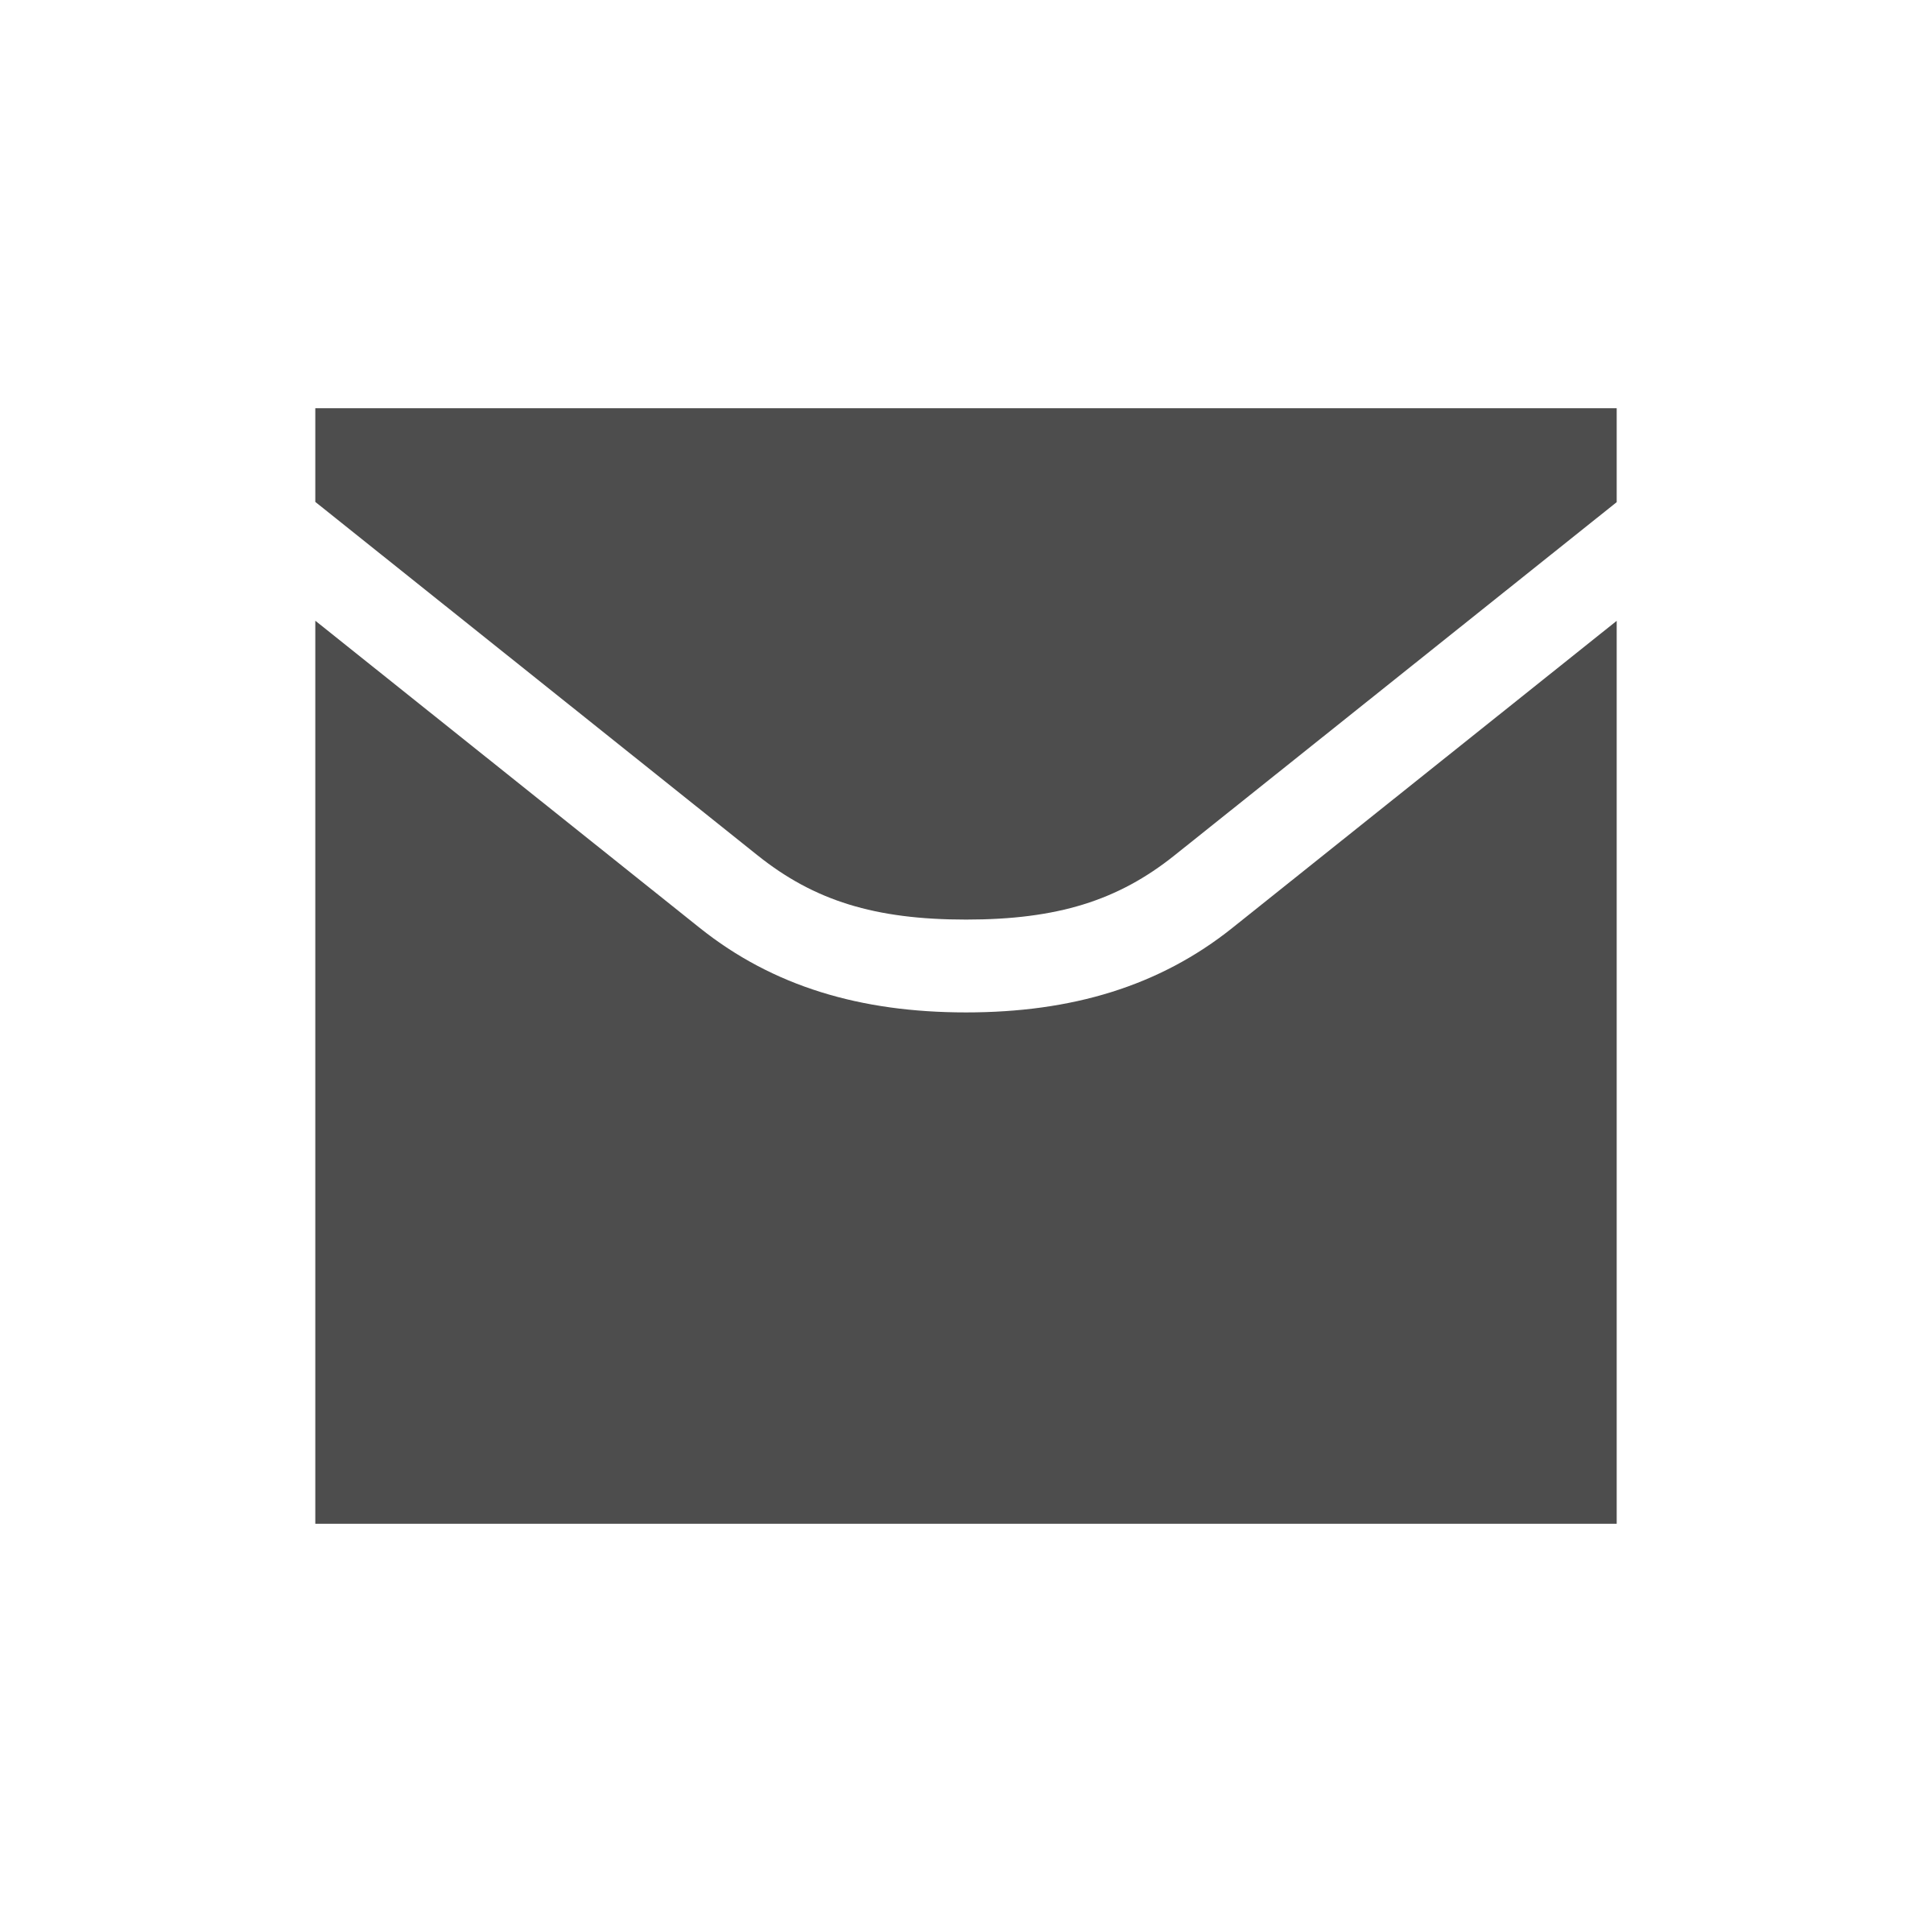 Mail icon by m1981